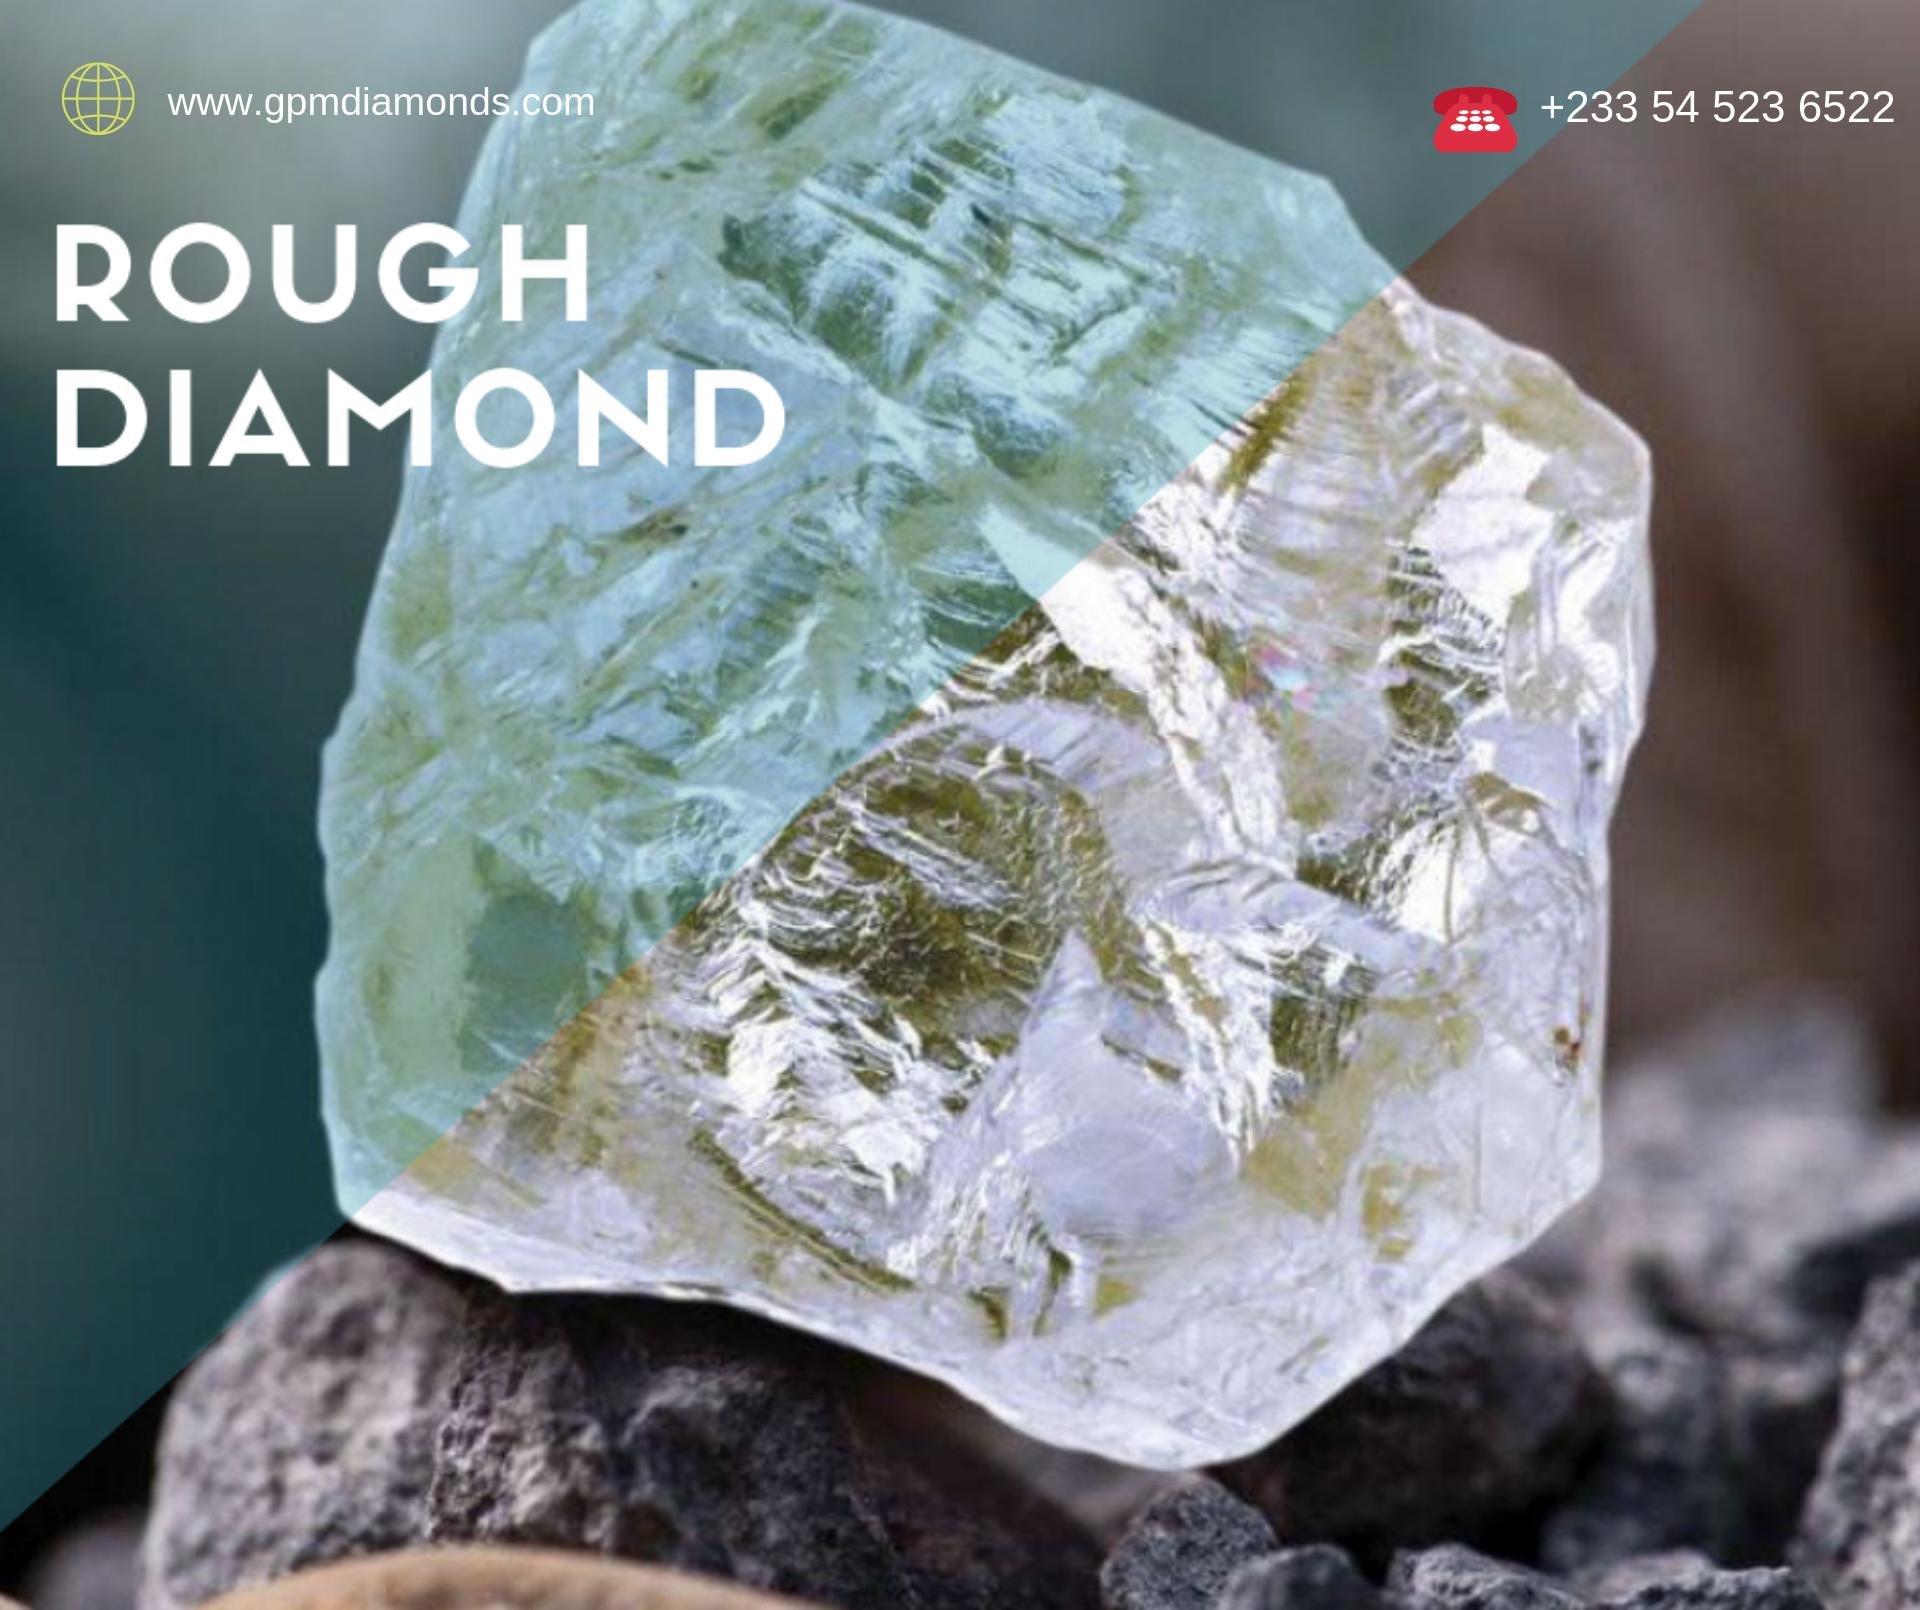 Rough Diamonds For Sale Roughdi75832283 Twitter